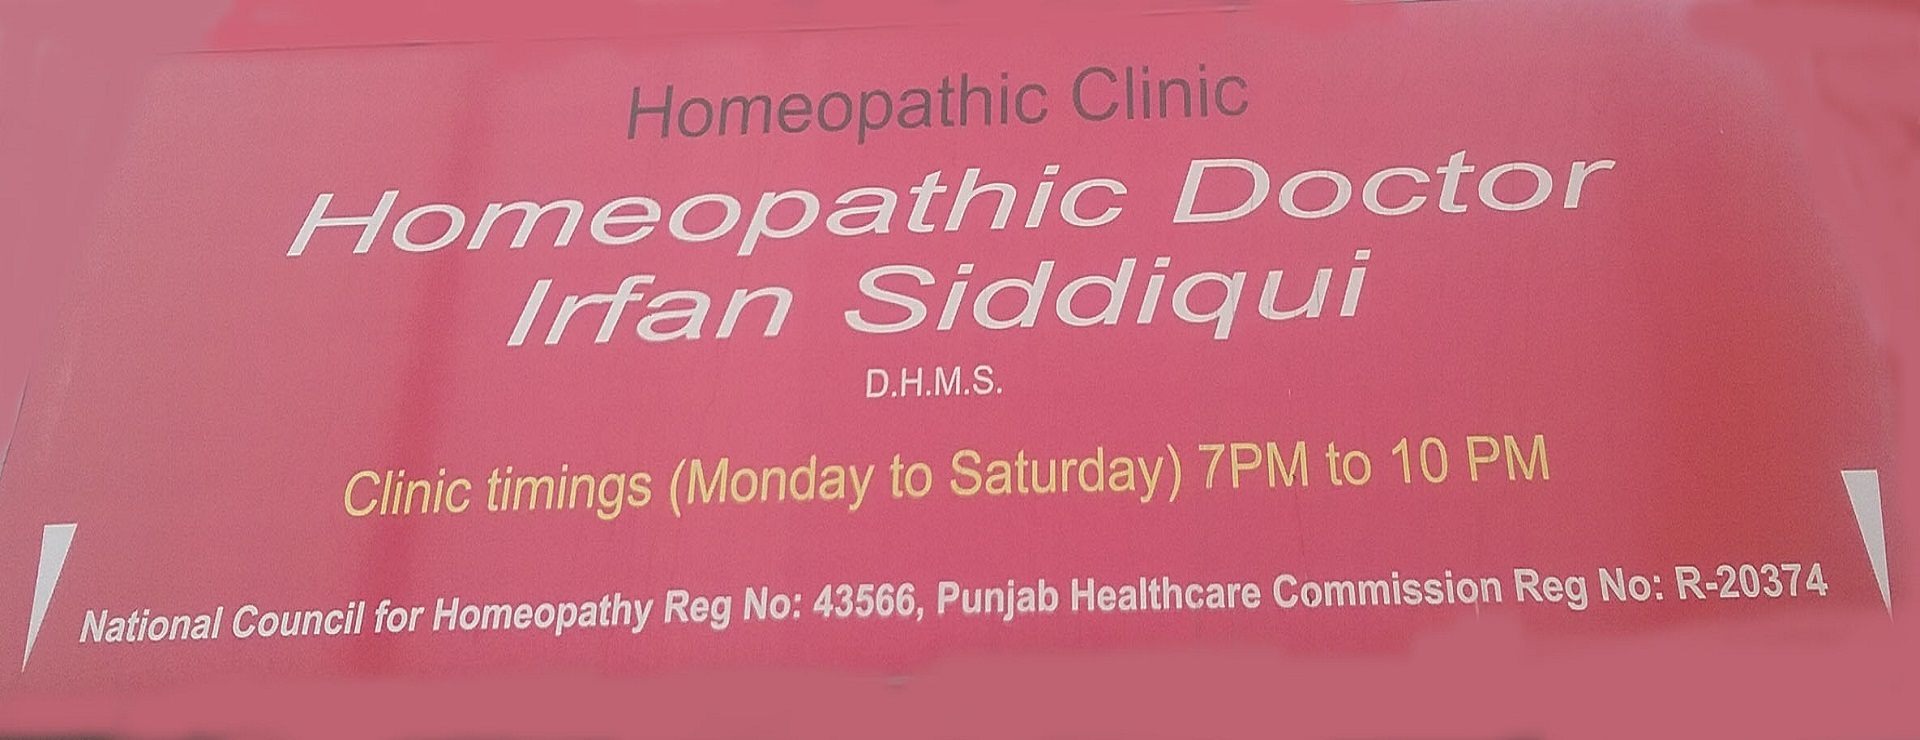 Defence homeopathic